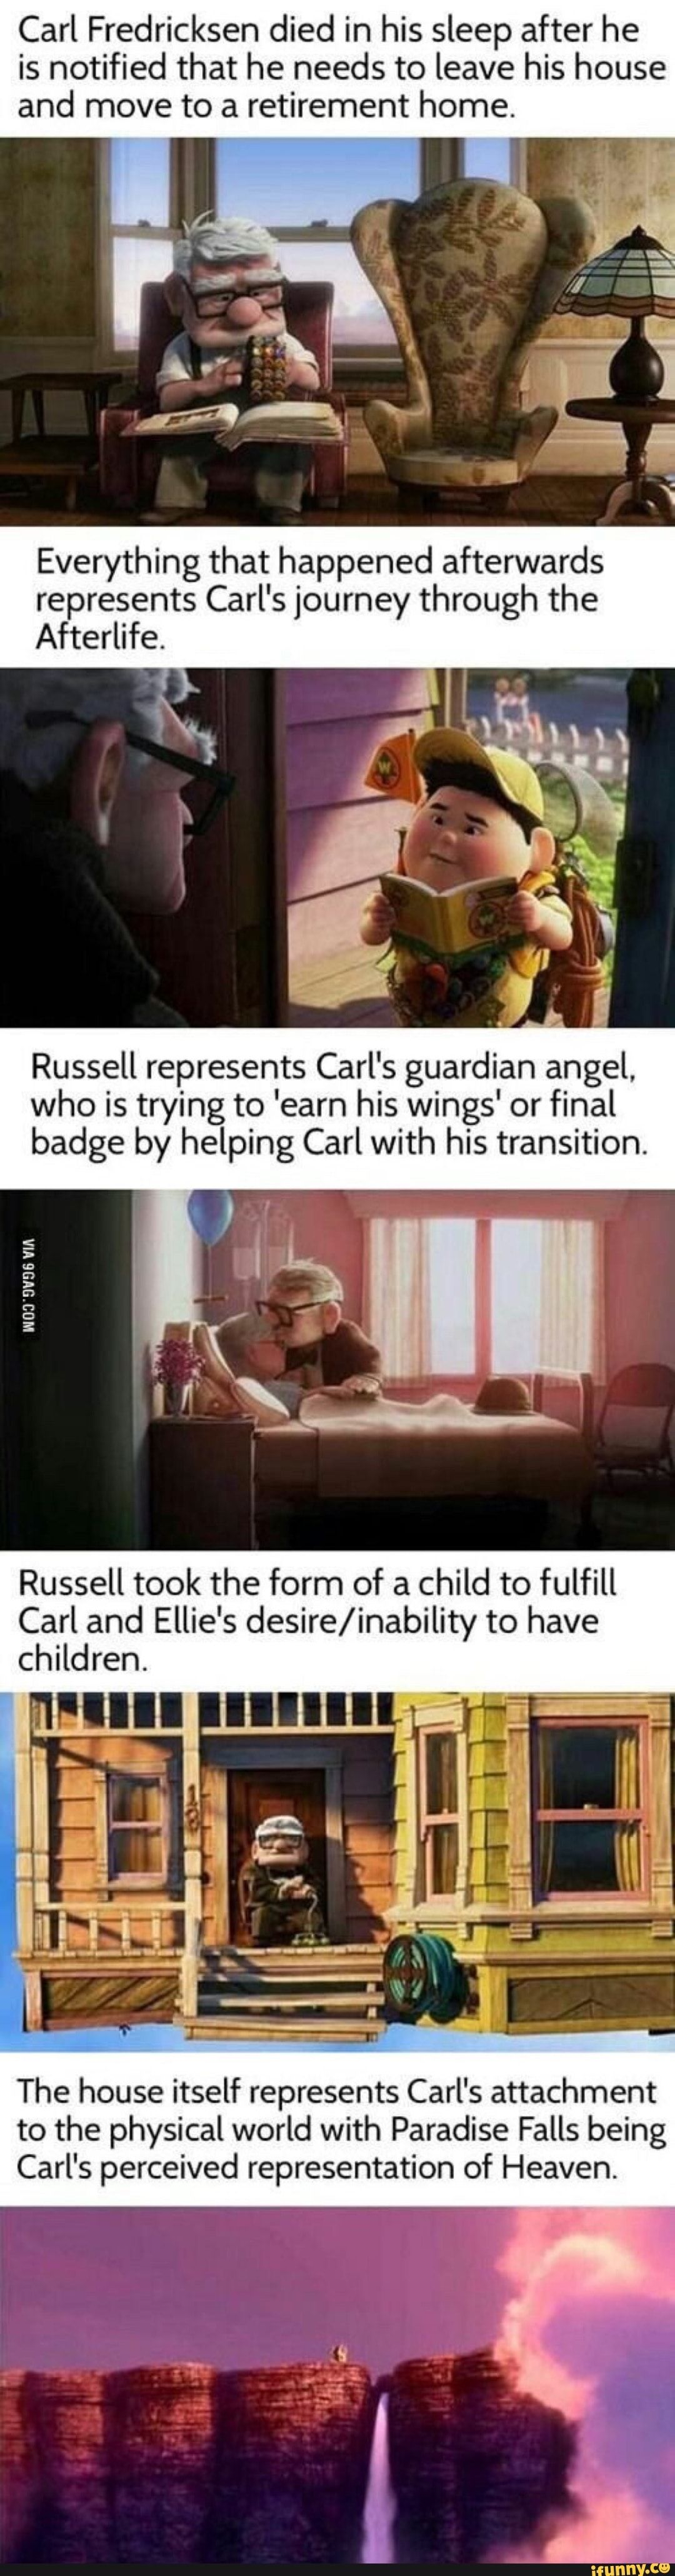 Carl Fredricksen died in his sleep after he is notified that he needs to leave his house and move to a retirement home. Everything that happened afterwards represents Carl's journey through the Afterlife. Russell represents Carl's guardian angel, who is trying to 'earn his wings' or fin... #fantasy #artcreative #carl #fredricksen #died #sleep #notified #needs #leave #house #move #retirement #home #everything #happened #afterwards #represents #carls #afterlife #russell #guardian #angel #pic